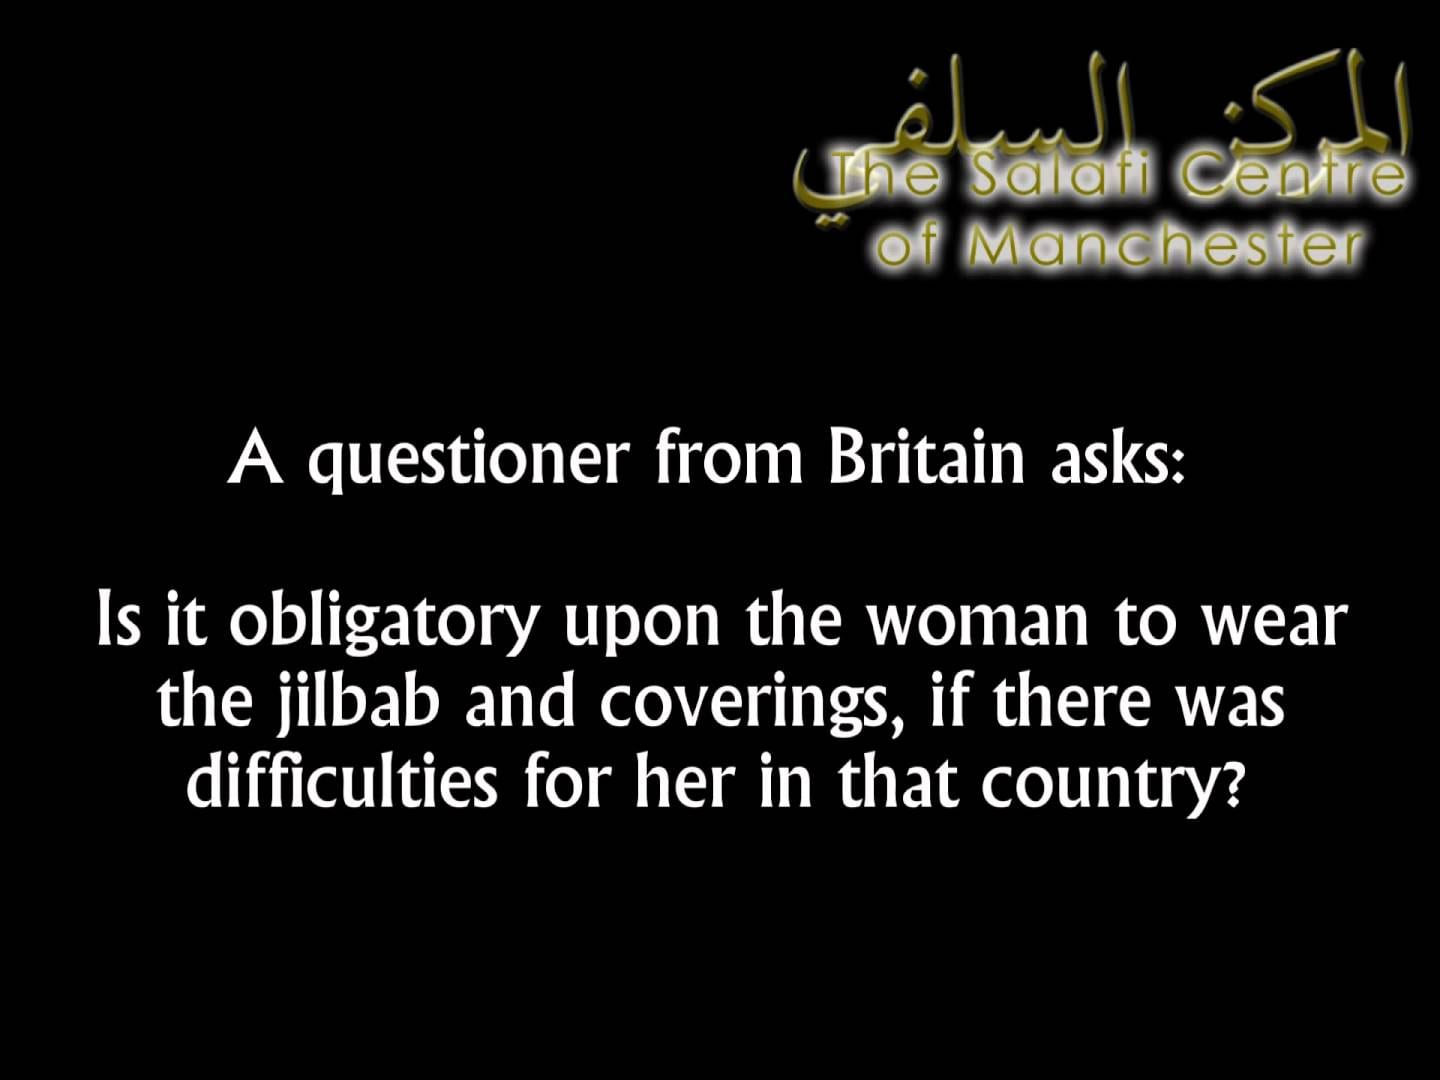 Is It Obligatory Upon A Woman To Wear The Jilbab If It Is Difficult For Her In That Country?